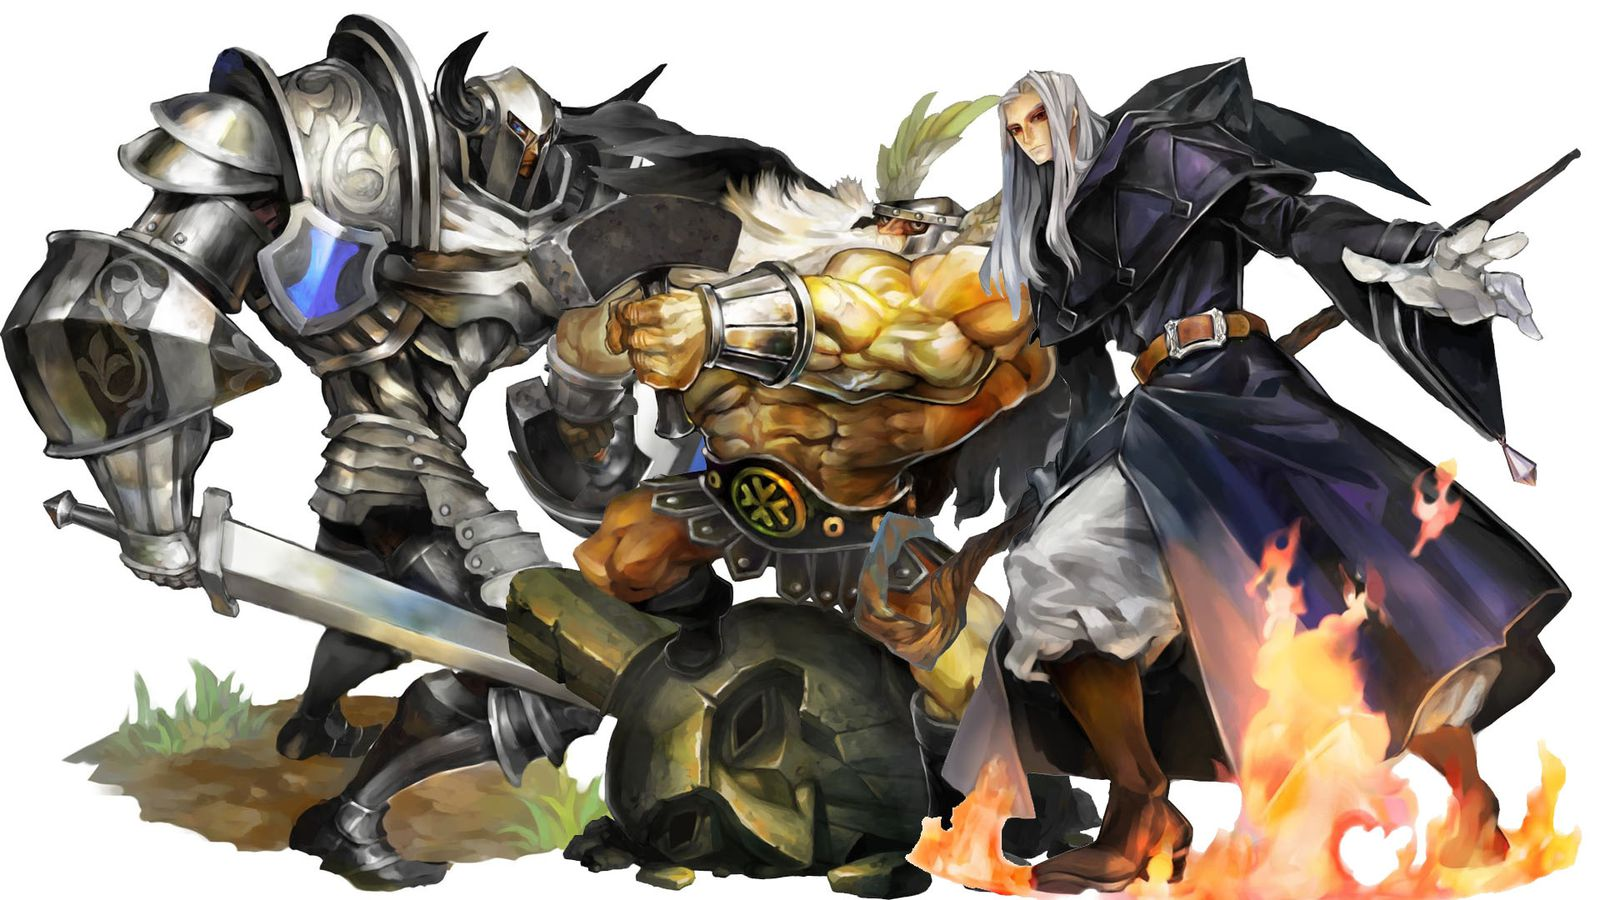 Dragon's crown : de l'aventure et de la baston [HandsOn]